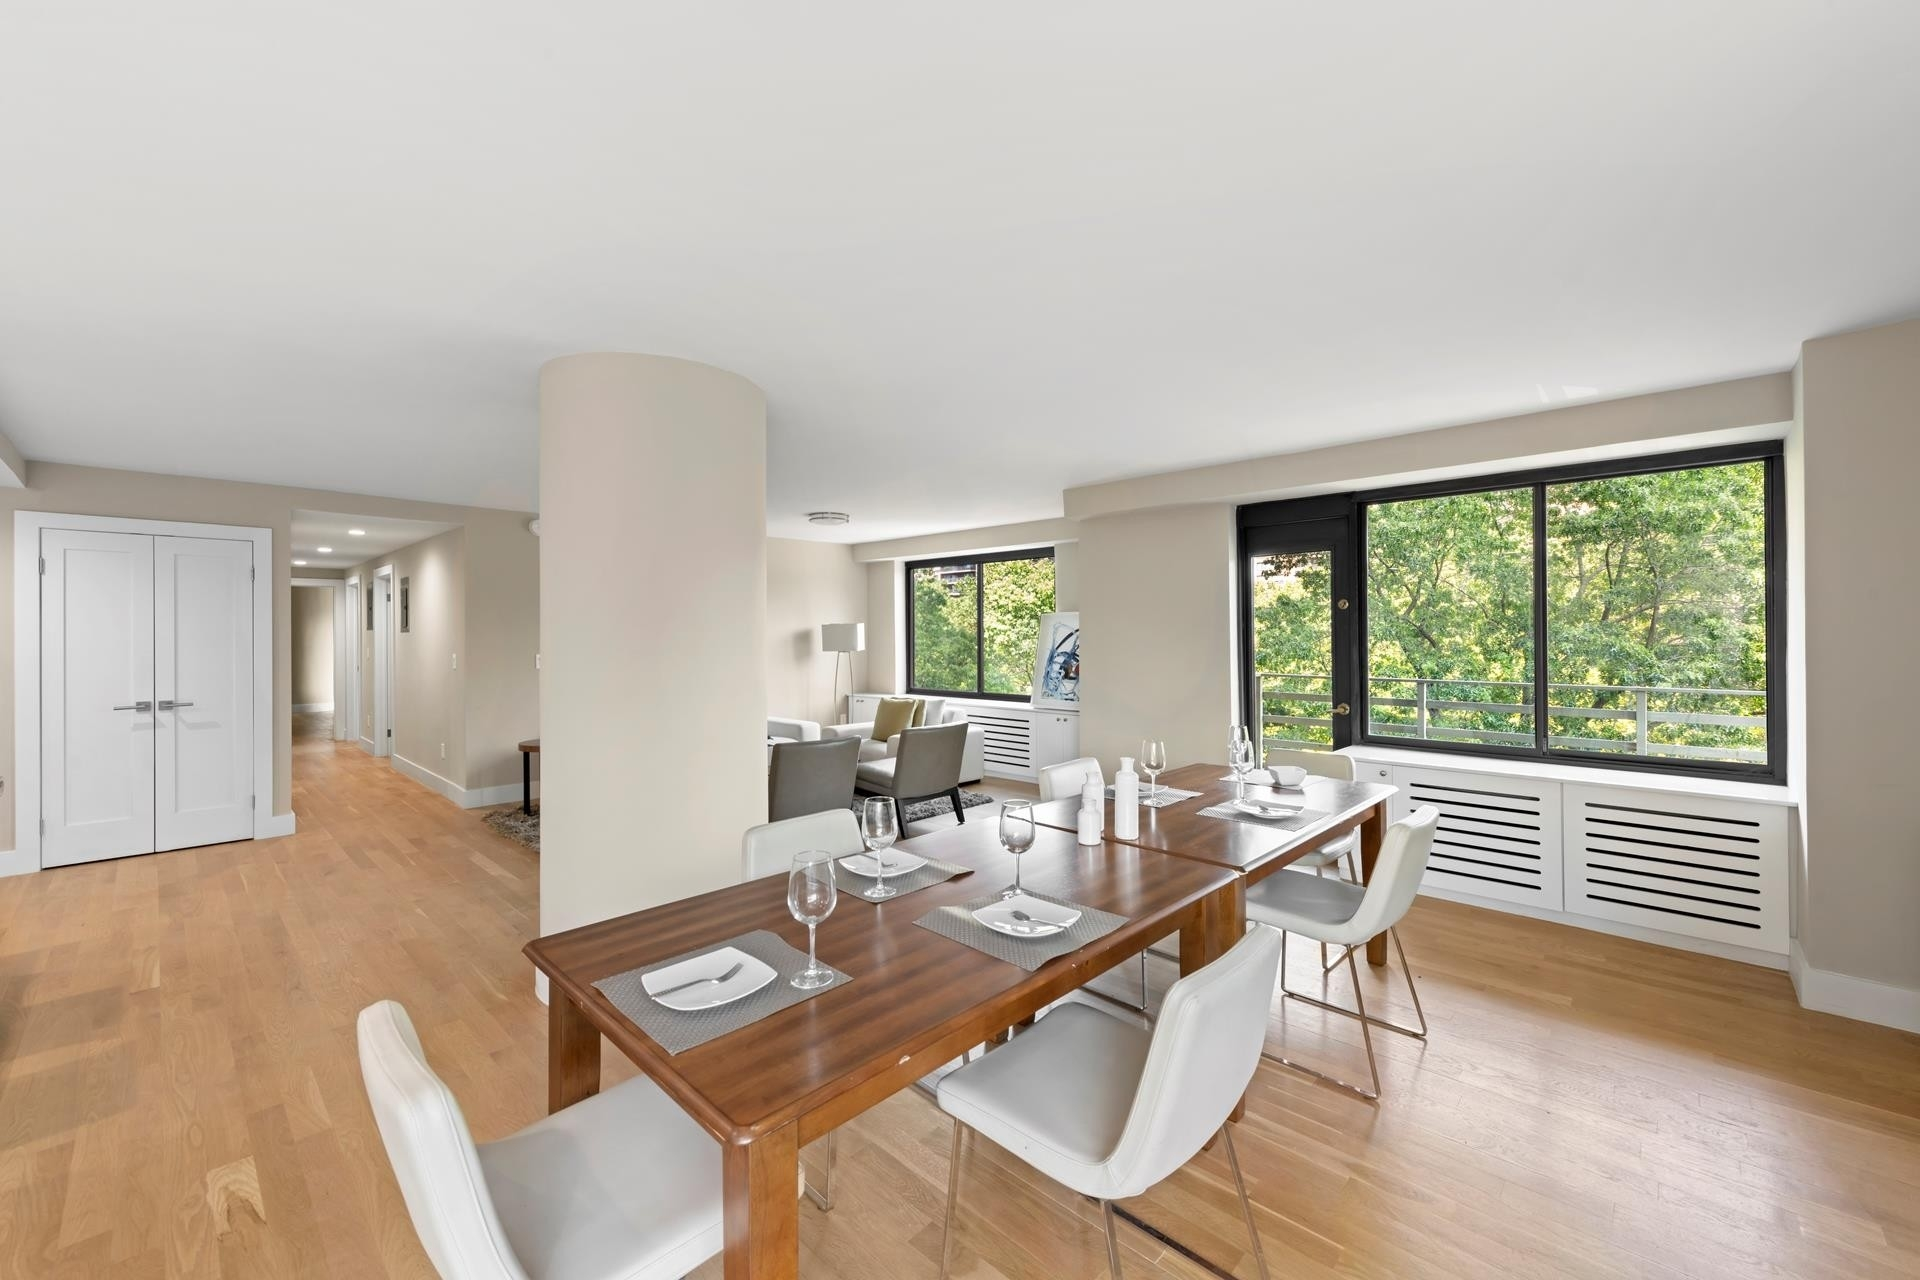 18. Condominiums for Sale at Vaux, The (Park Wes, 372 CENTRAL PARK W, 5BC Manhattan Valley, New York, NY 10025